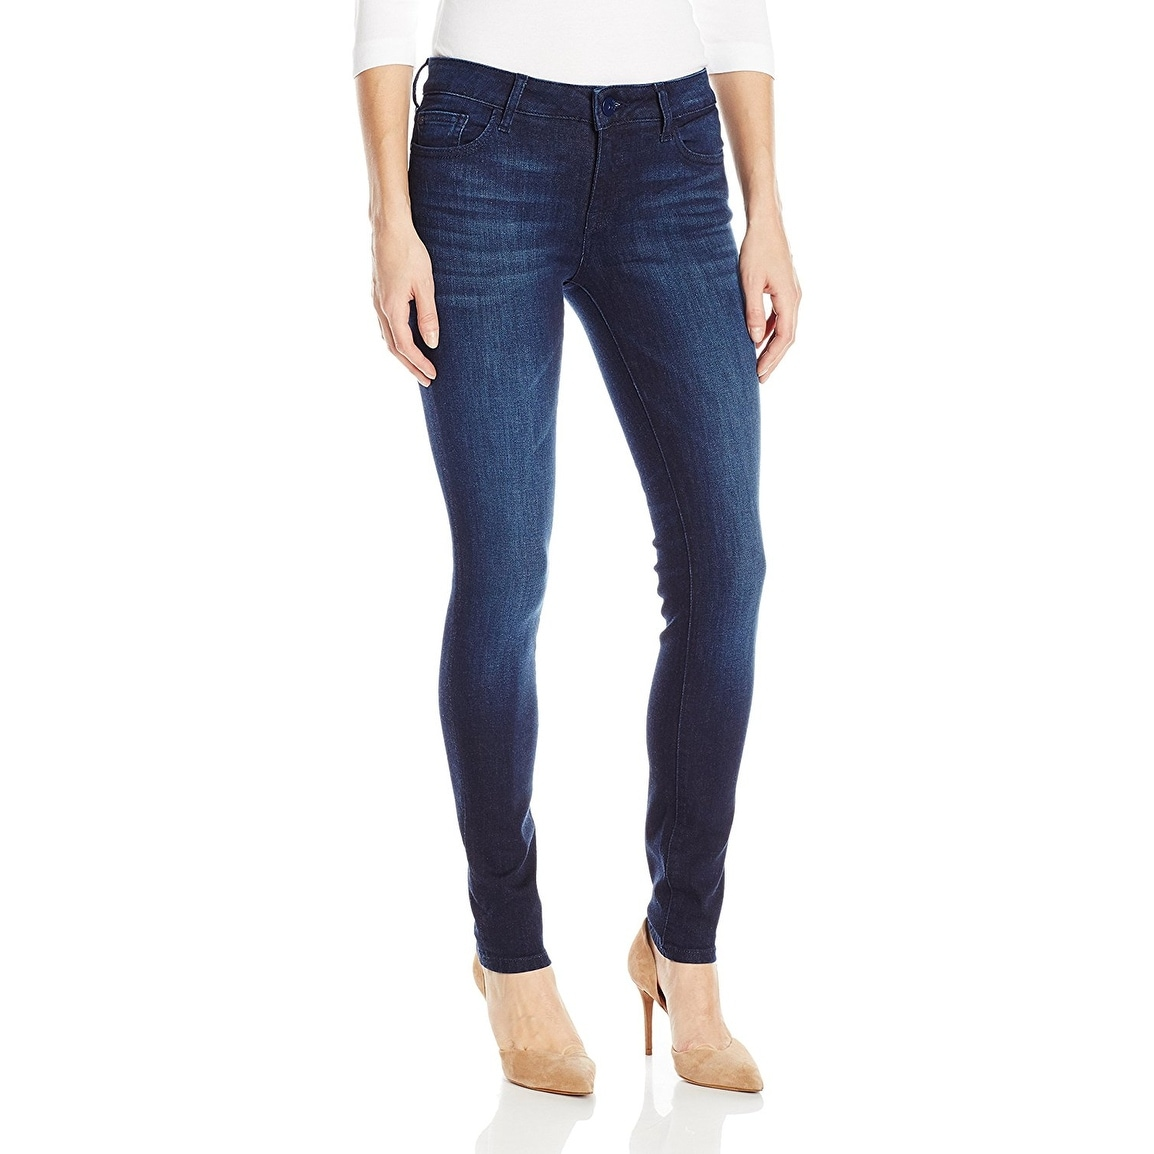 01f852cdf27 Shop DL1961 Jessica Alba Florence Instasculpt Skinny Jeans Pants - 26 -  Free Shipping Today - Overstock.com - 19873667